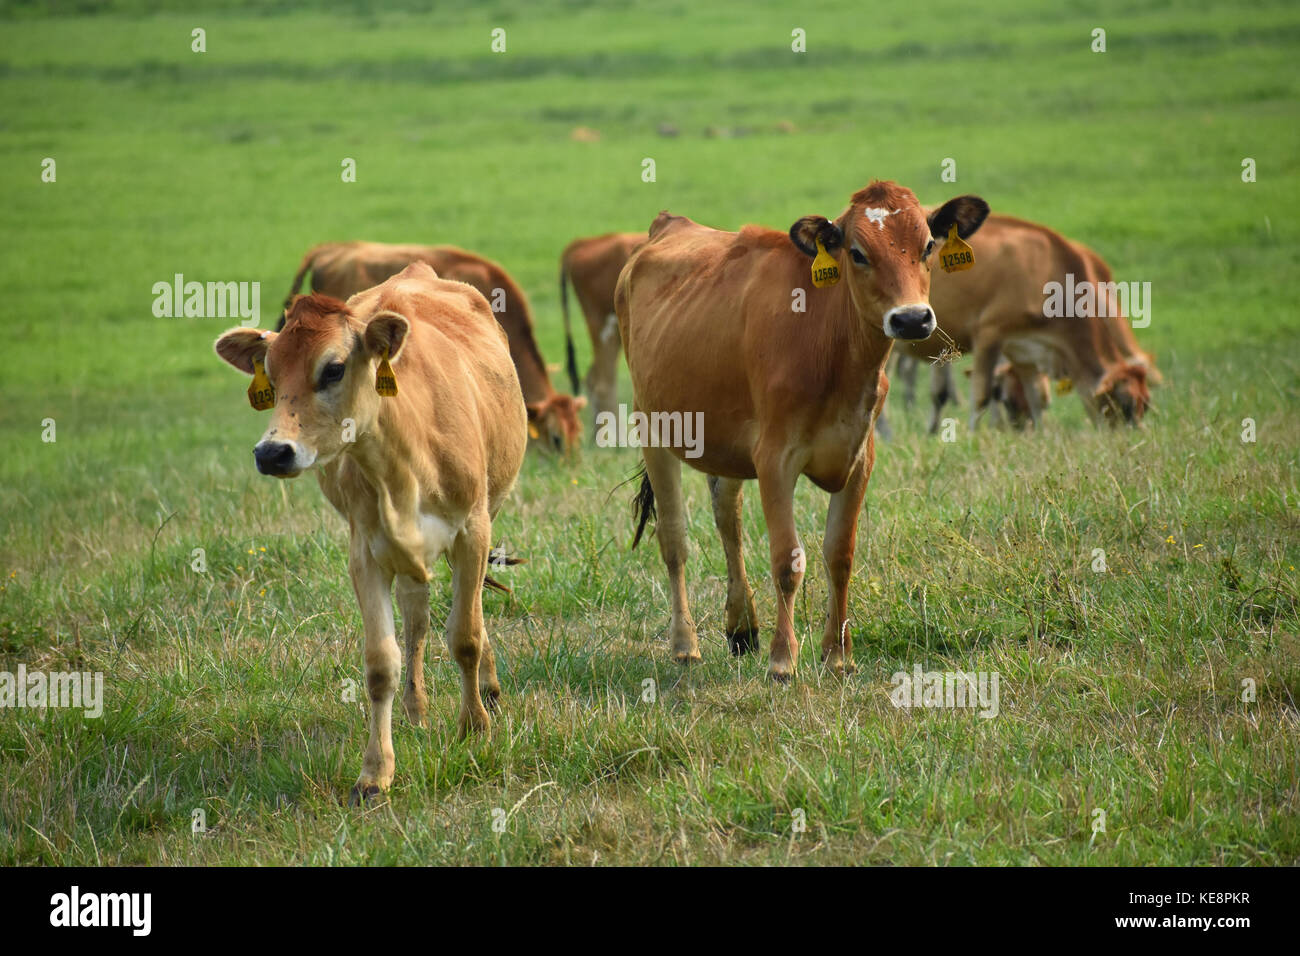 Cows in a field with beautiful green grass.  The cows have identification tags in their ears.  Some of the cows Stock Photo